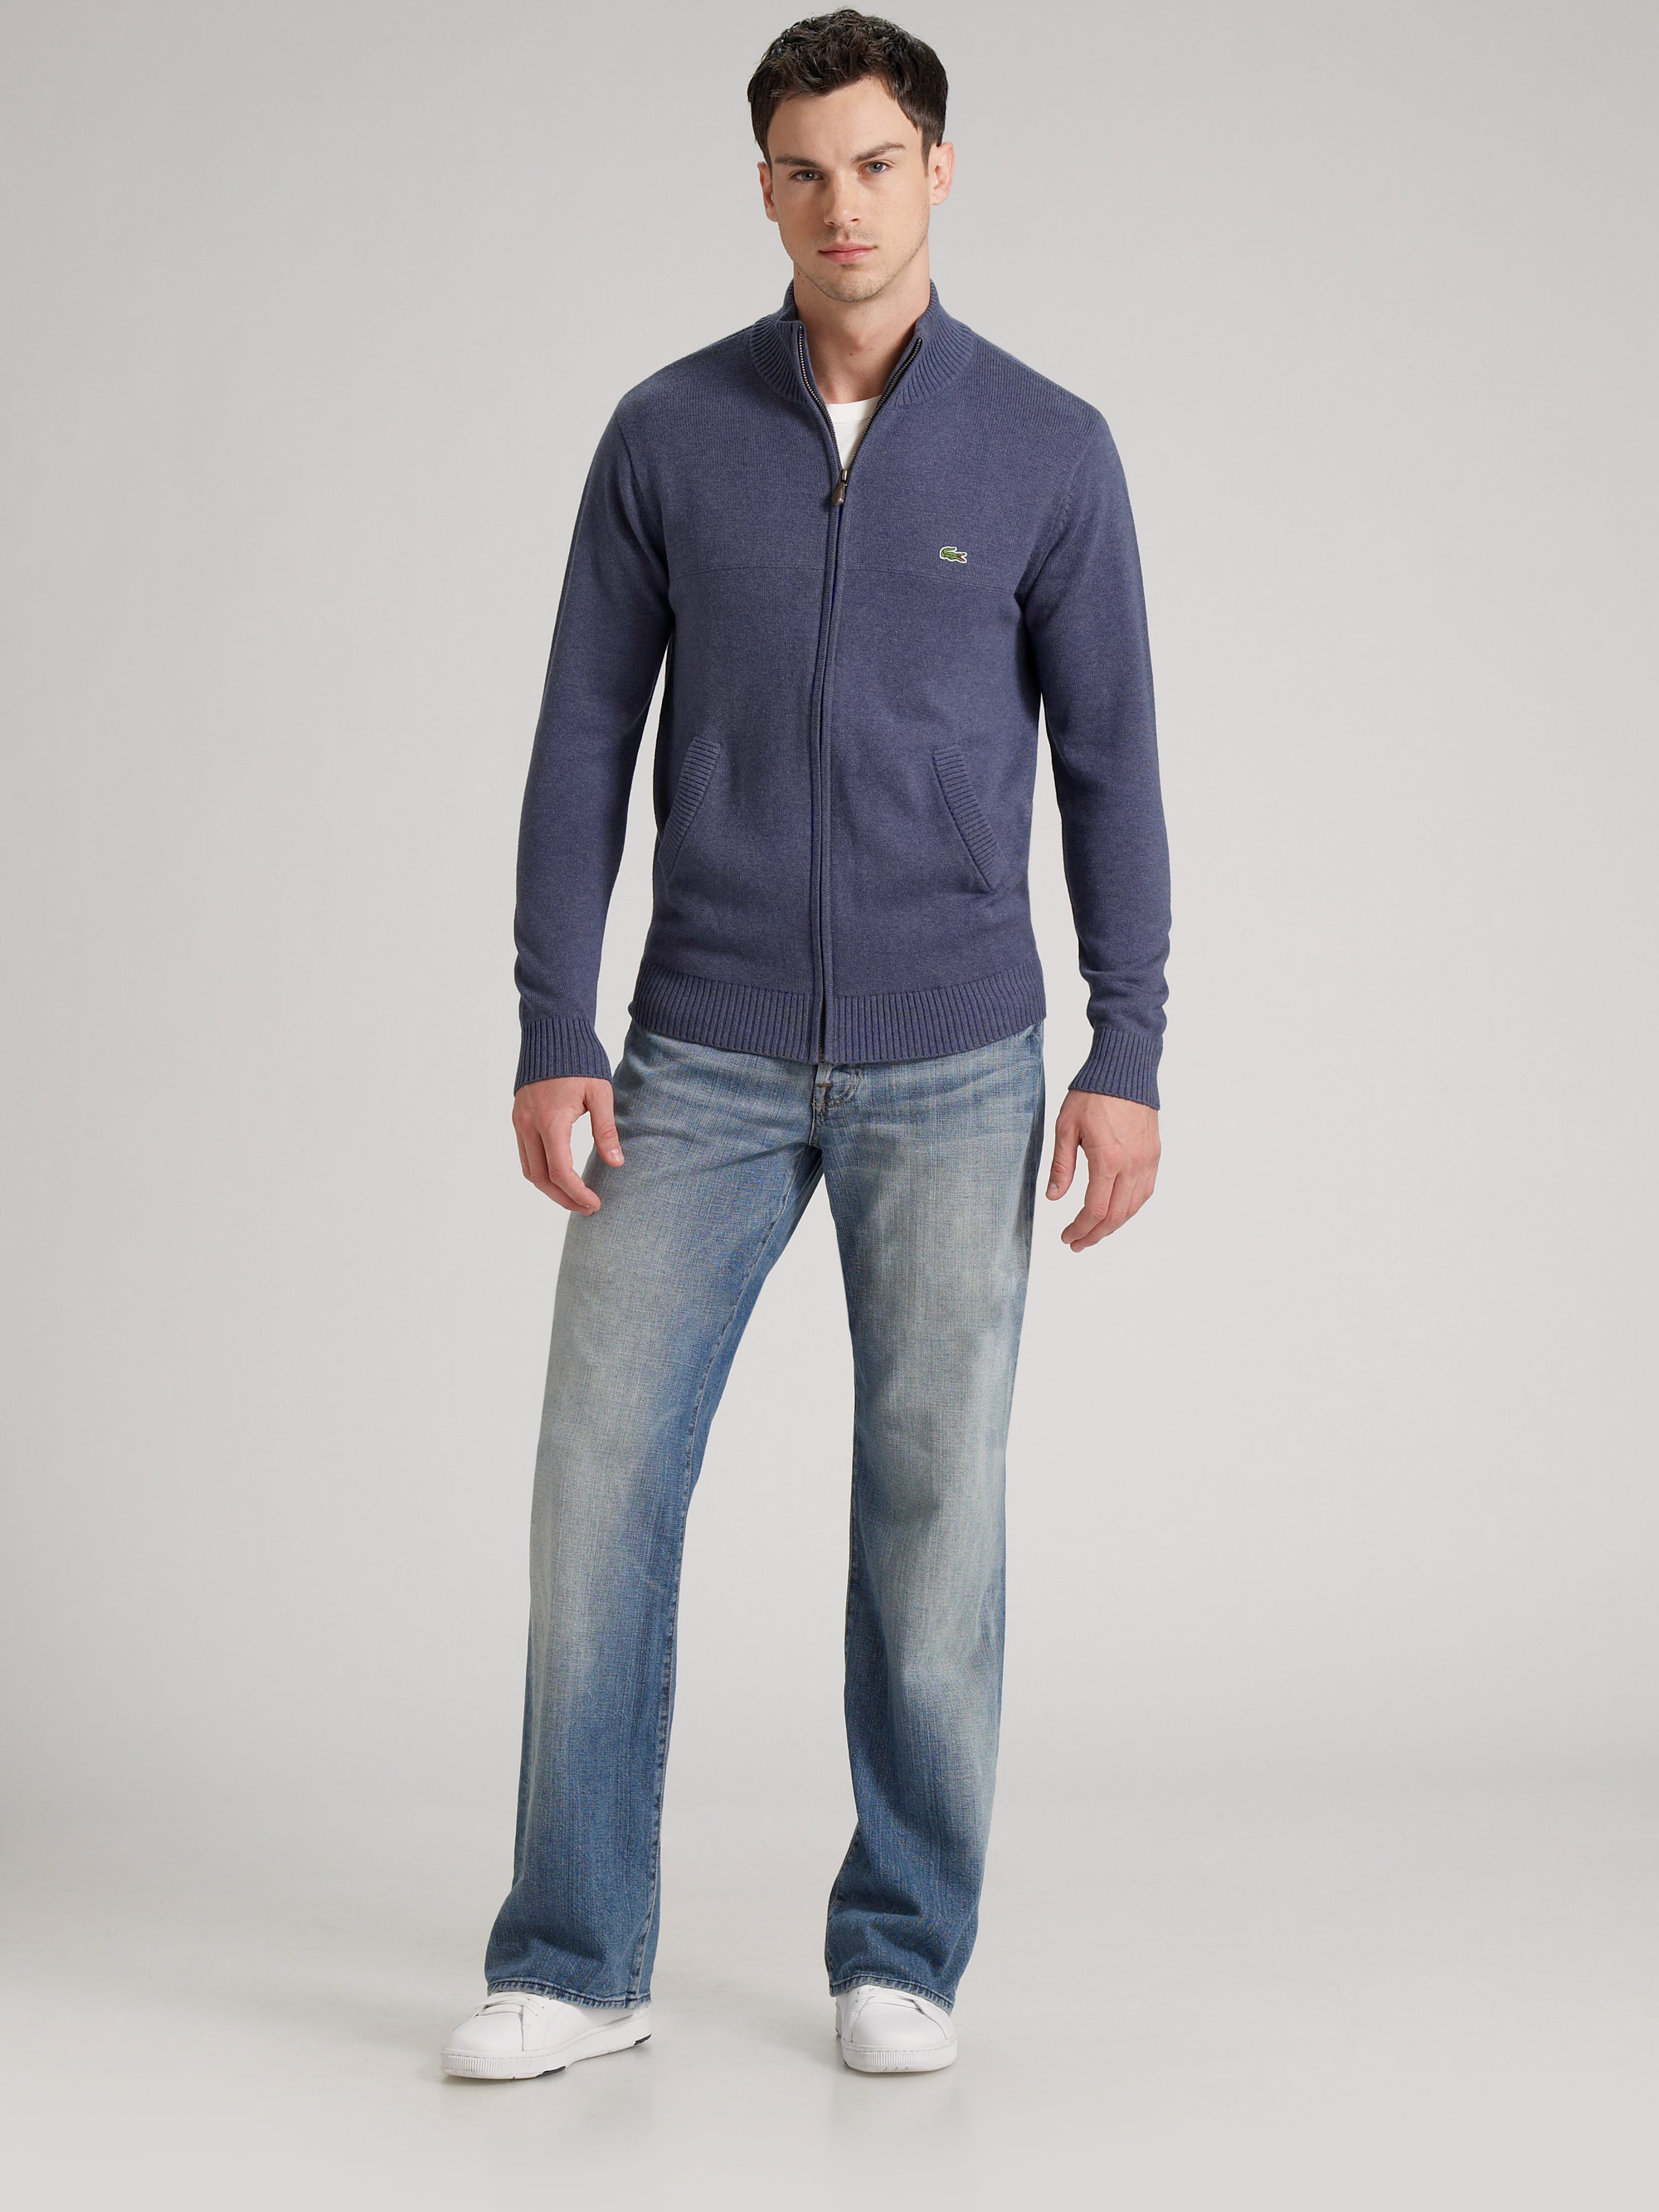 72e0d17d61b537 Lyst - Lacoste Zipfront Cardigan Sweater in Blue for Men